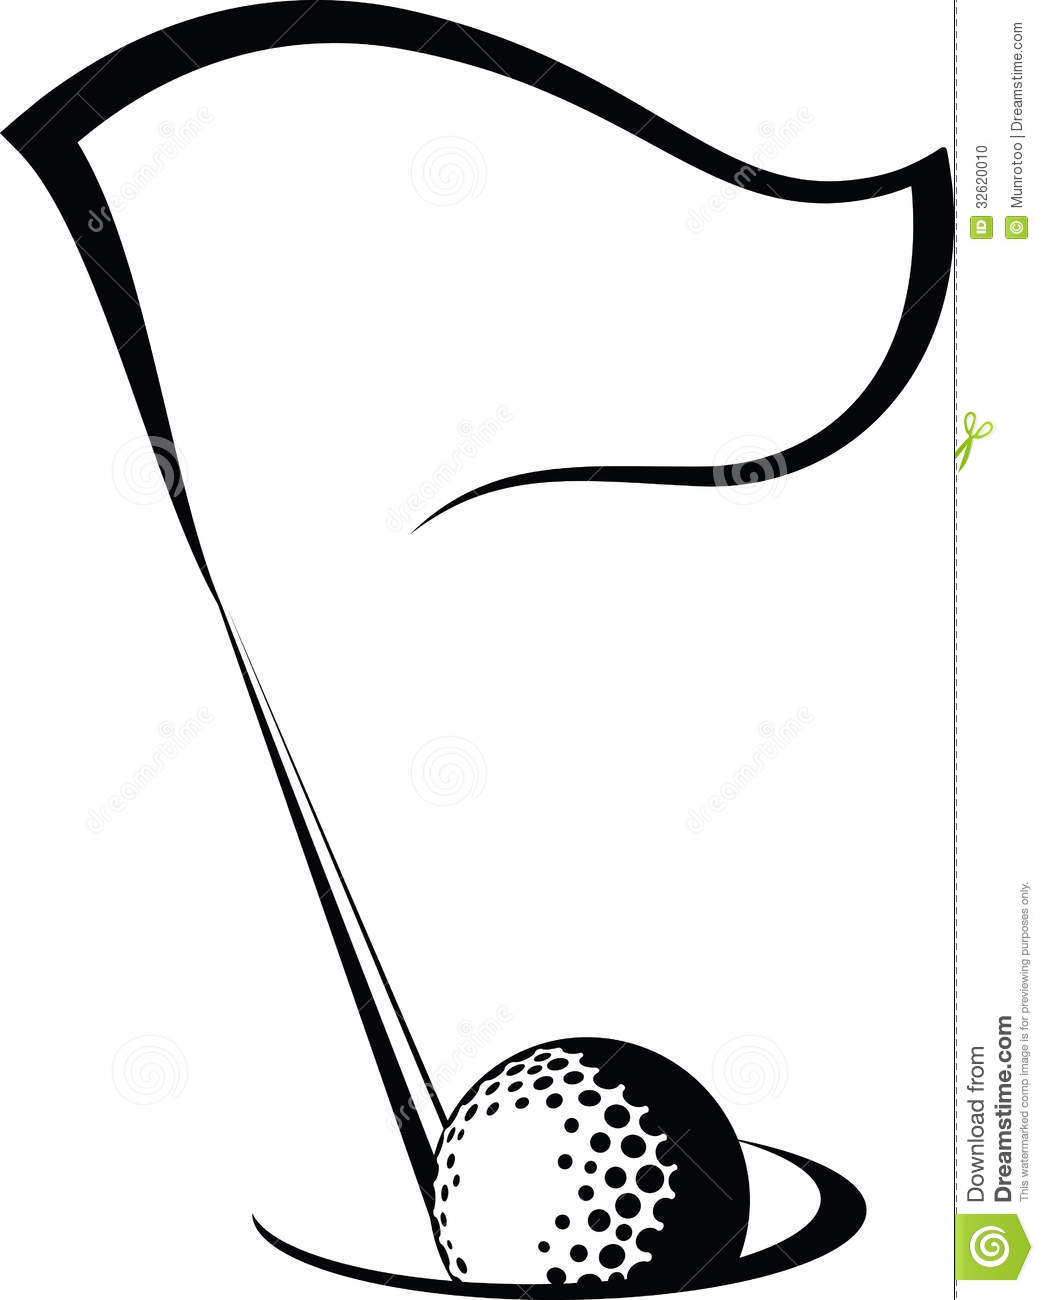 Free black and white golf clipart. Panda images